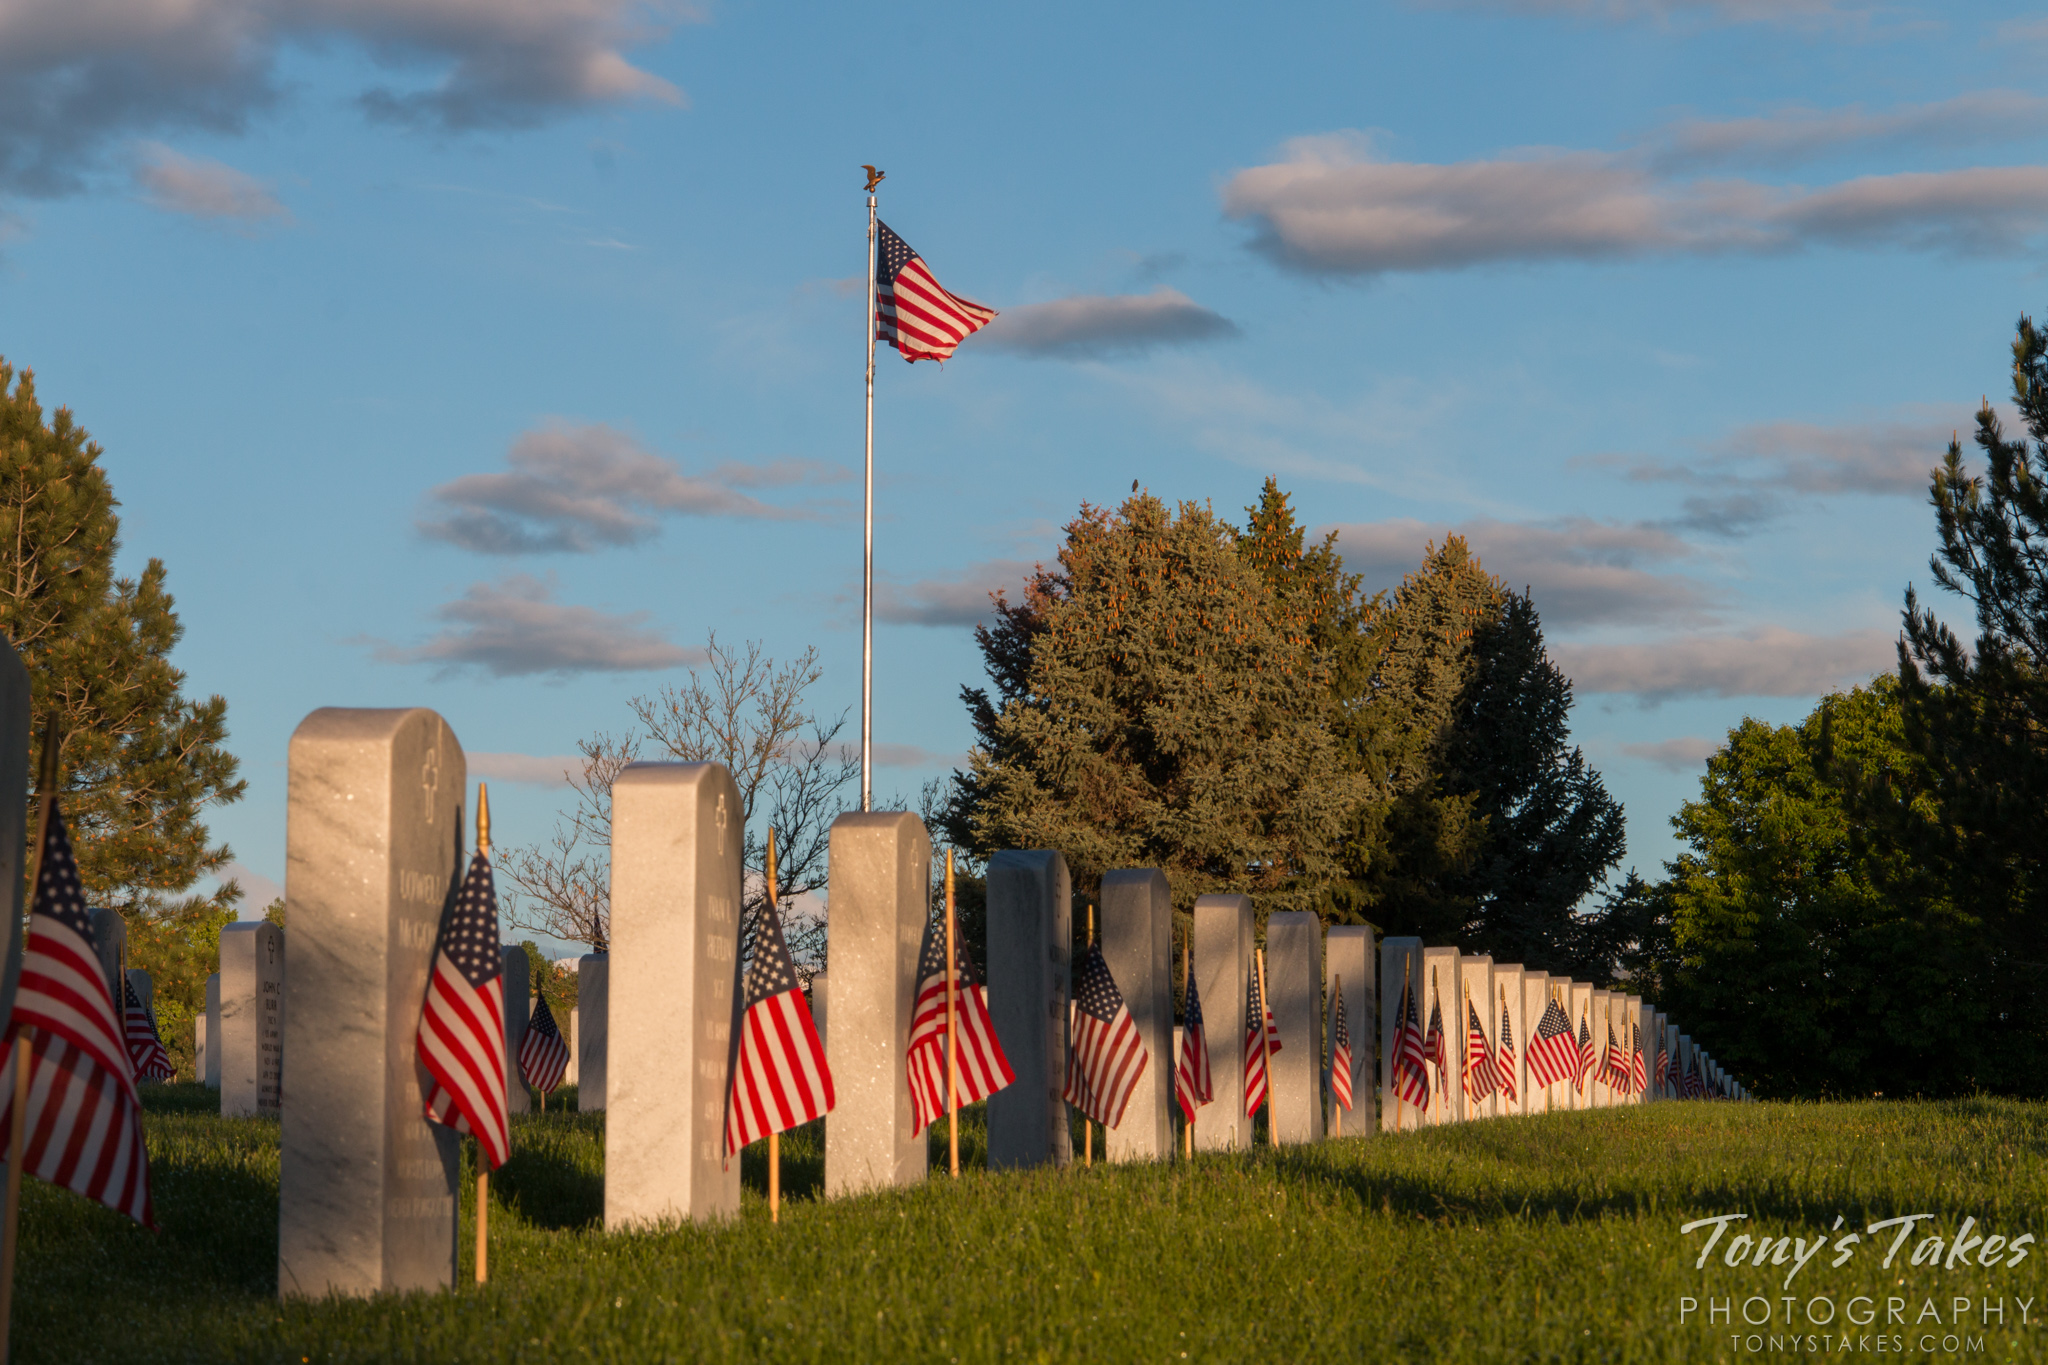 Remembering those sacrificed on the altar of freedom